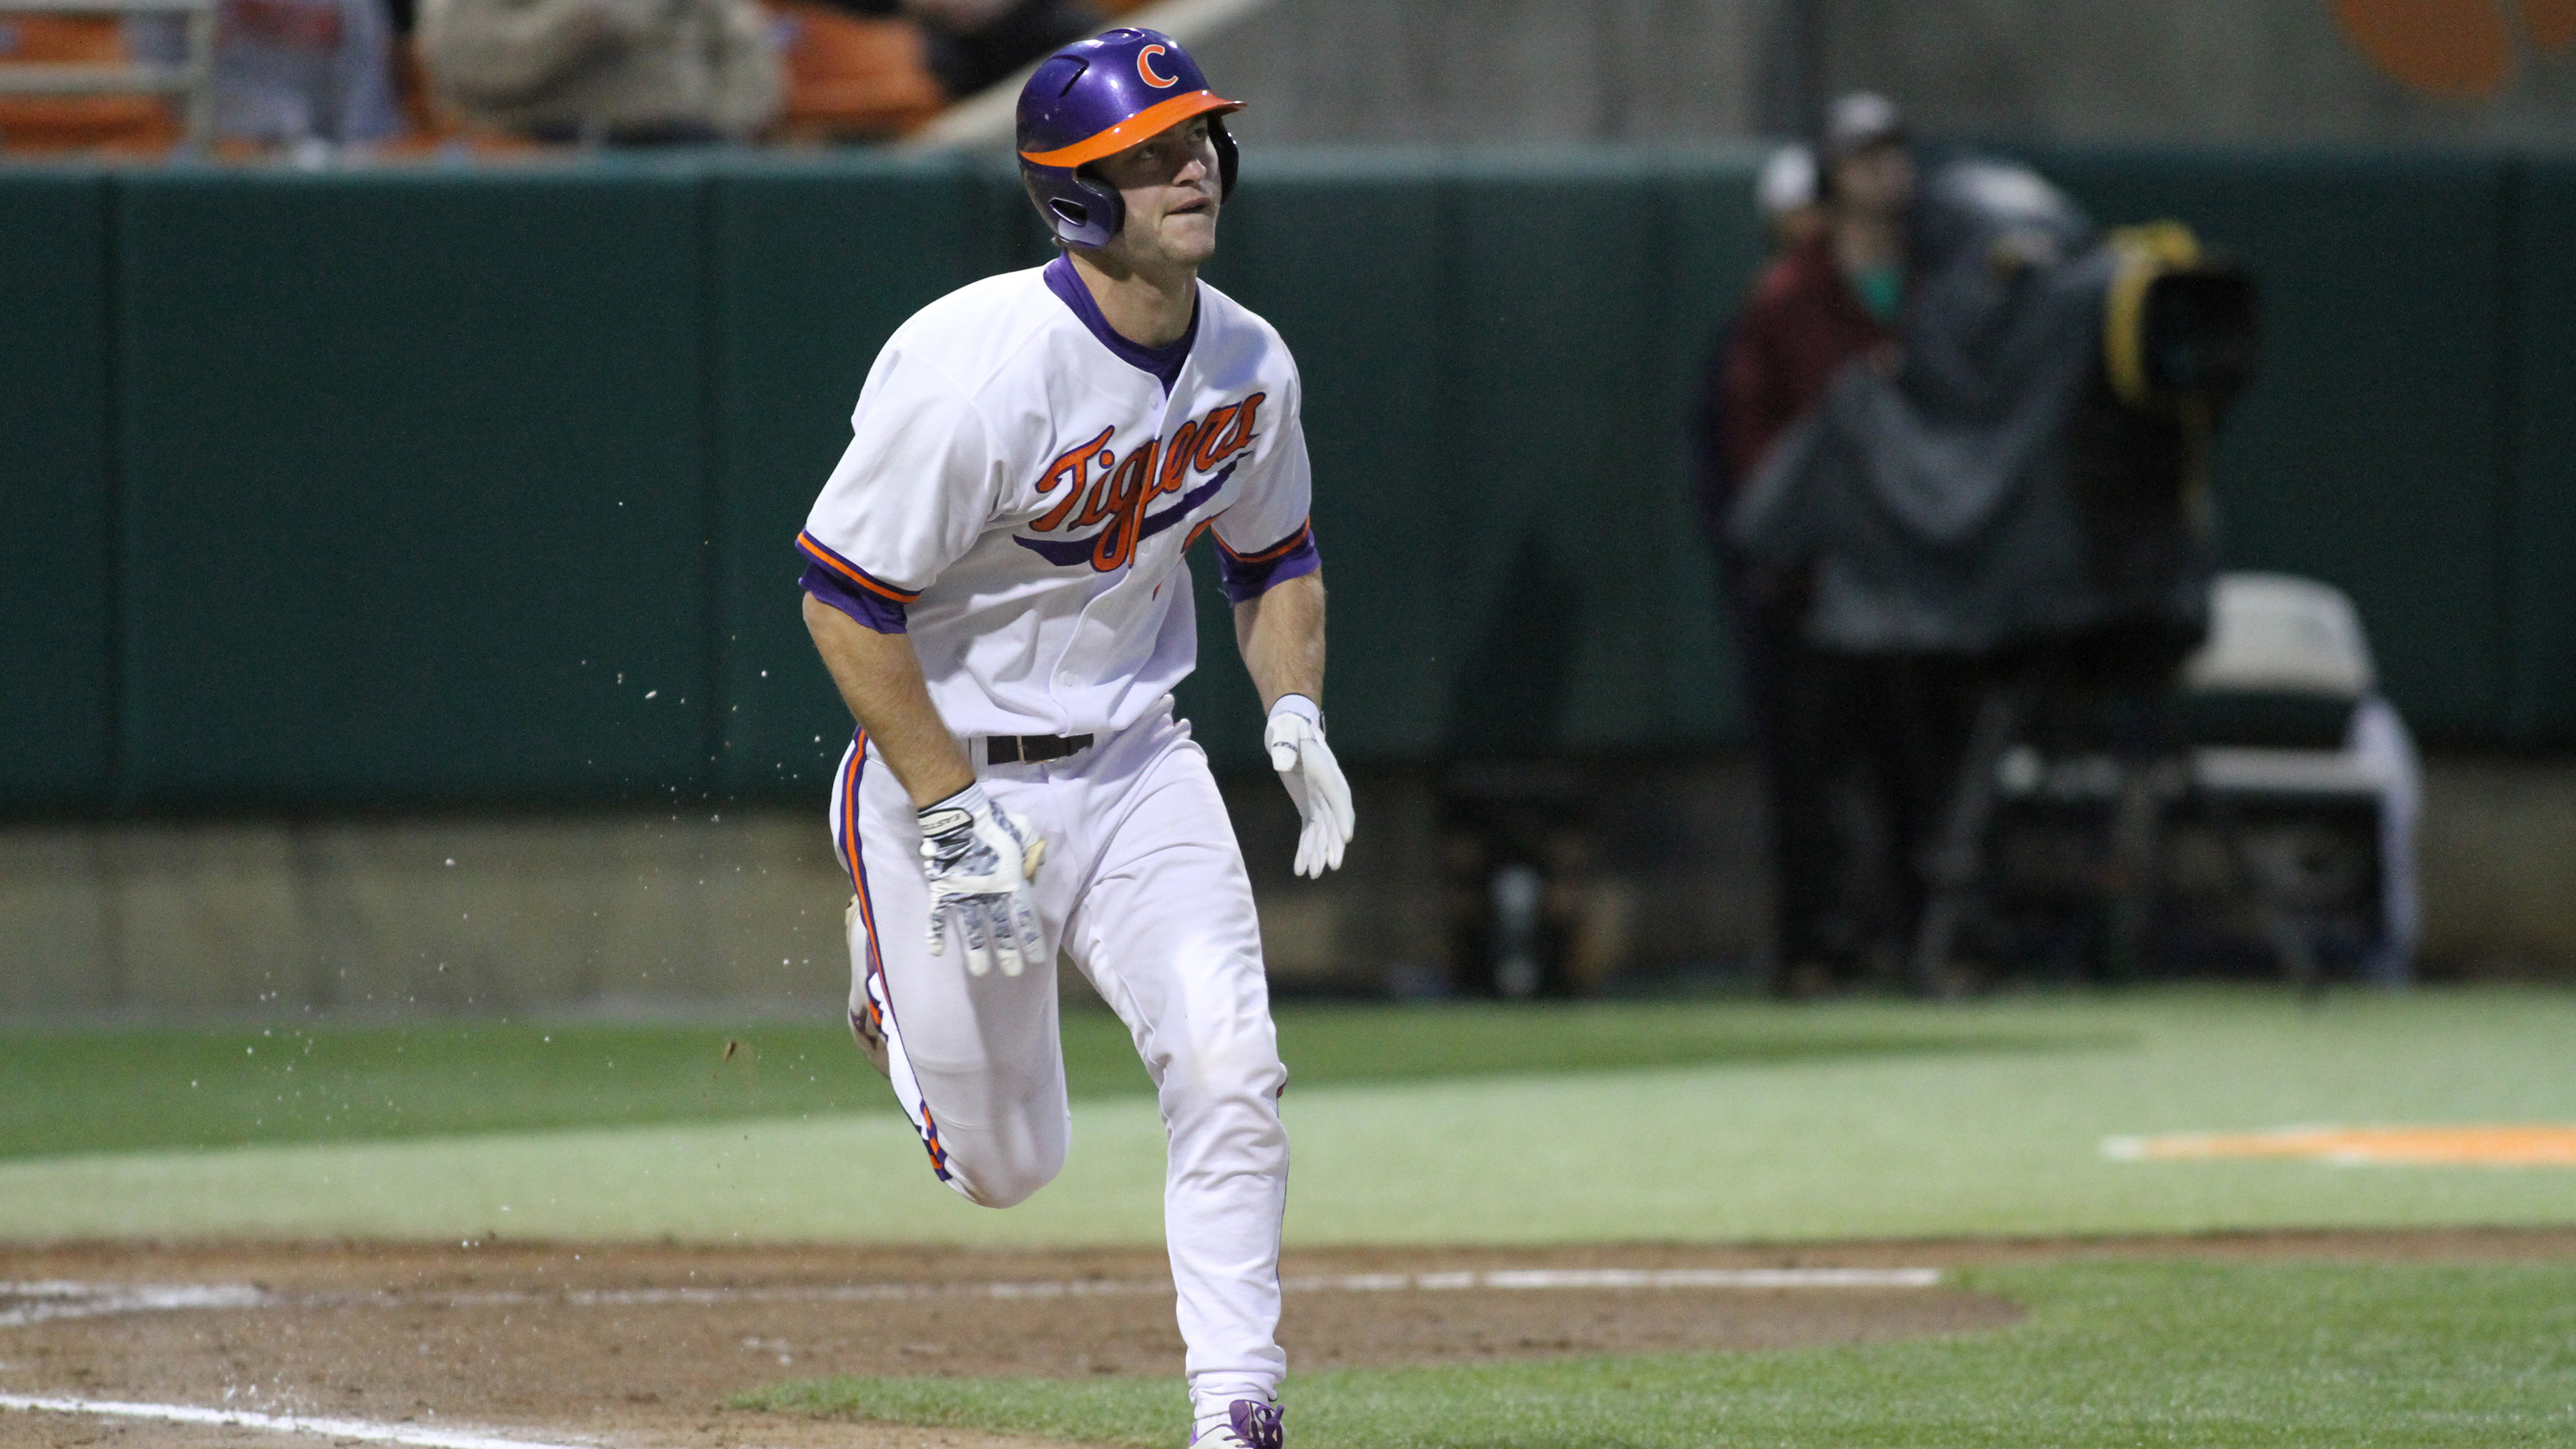 Bulldogs Strike Early to Top No. 14 Tigers 6-2 Tuesday